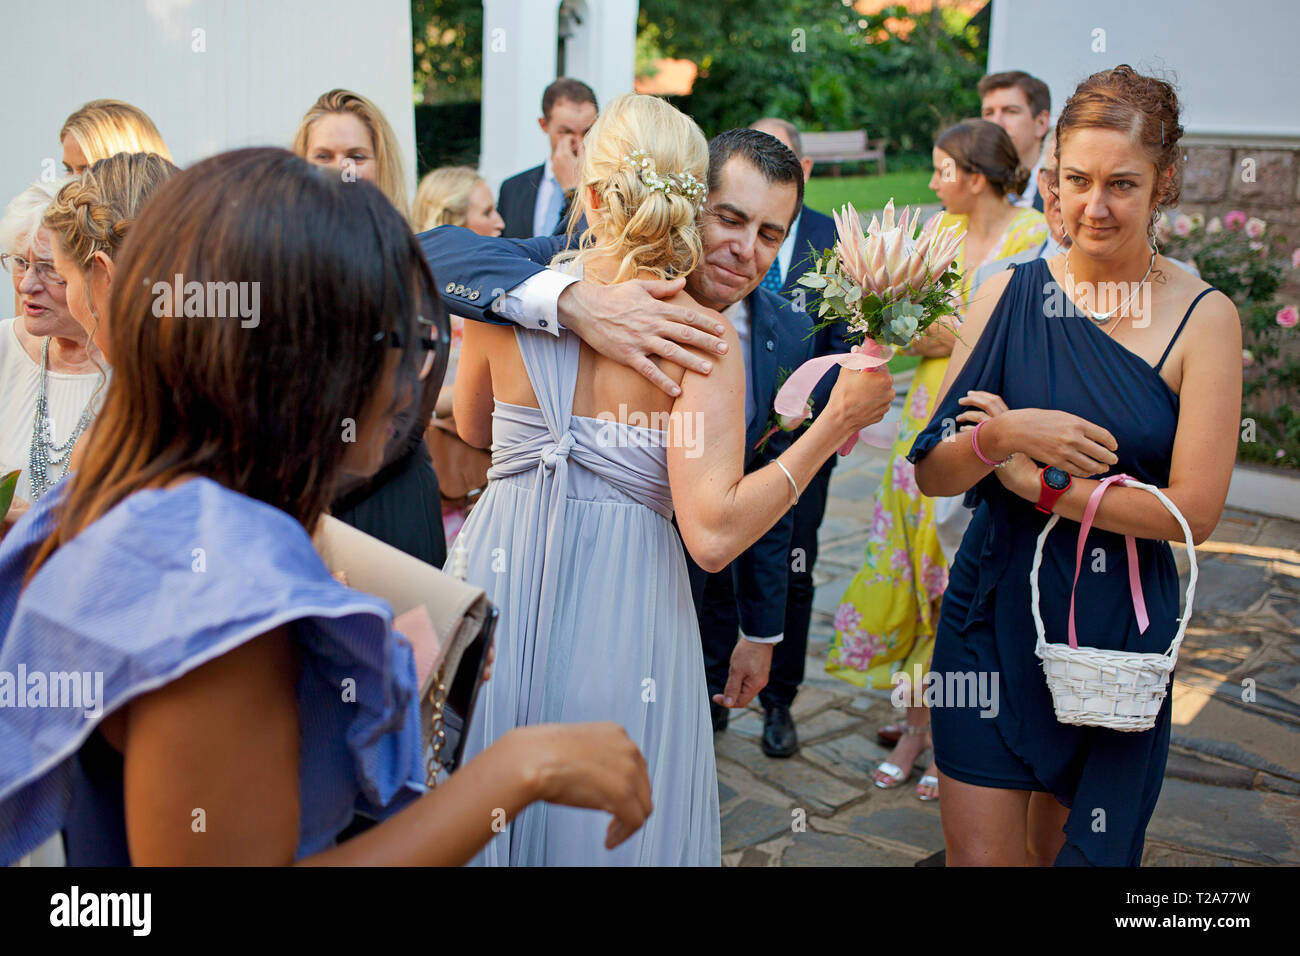 Wedding at St Andrew's School for Girls Stock Photo